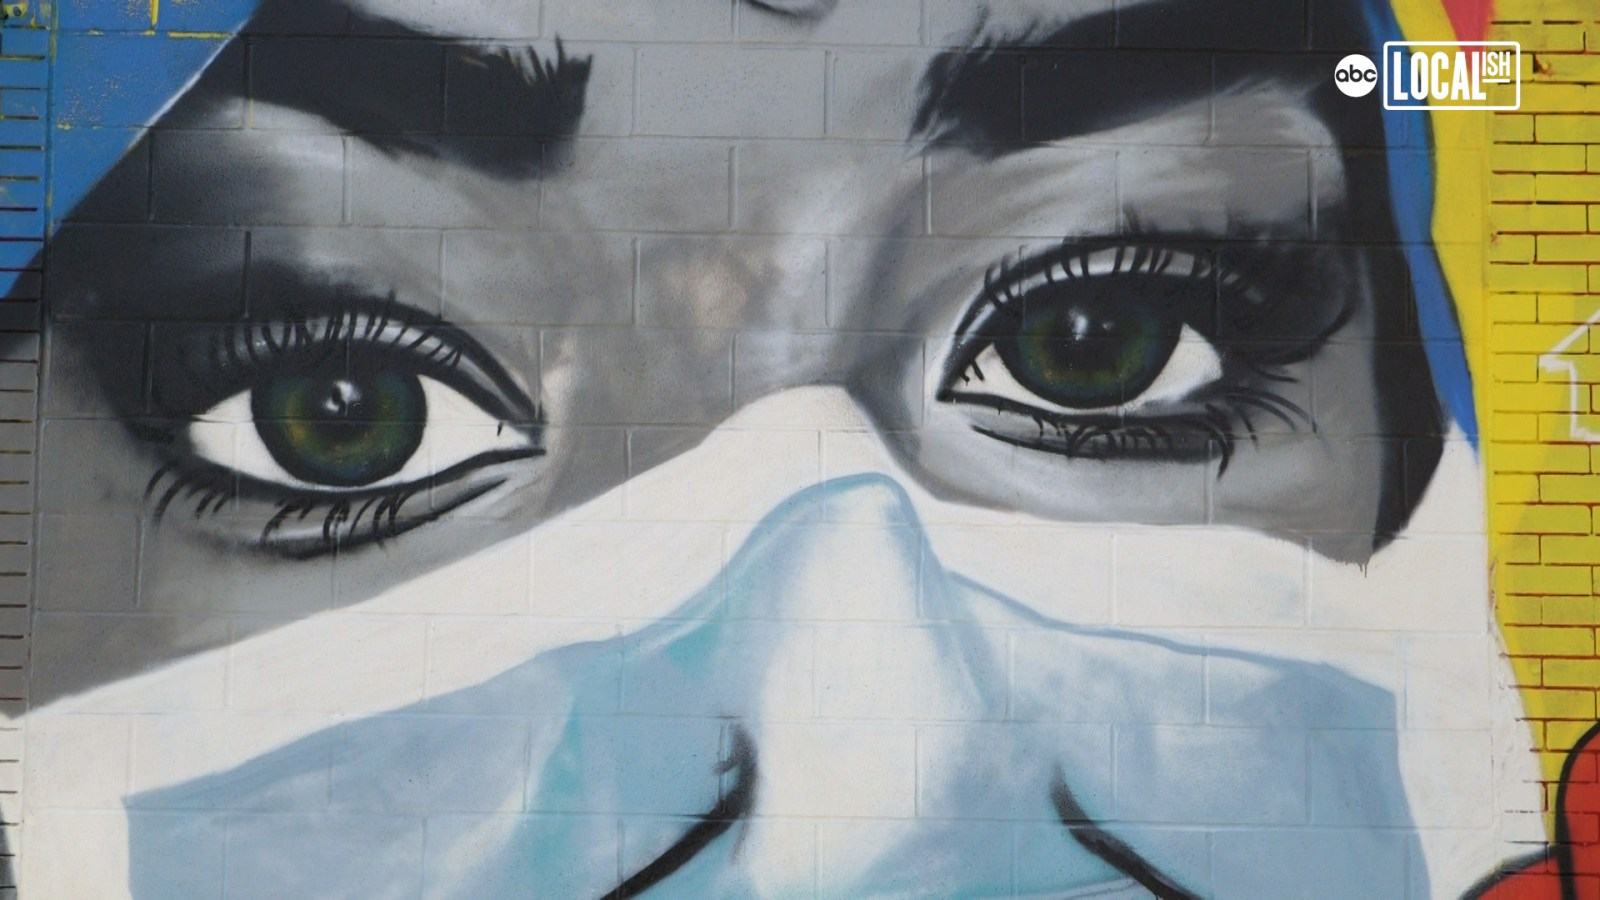 California mural honors frontline medical staff in the fight against covid19 pandemic